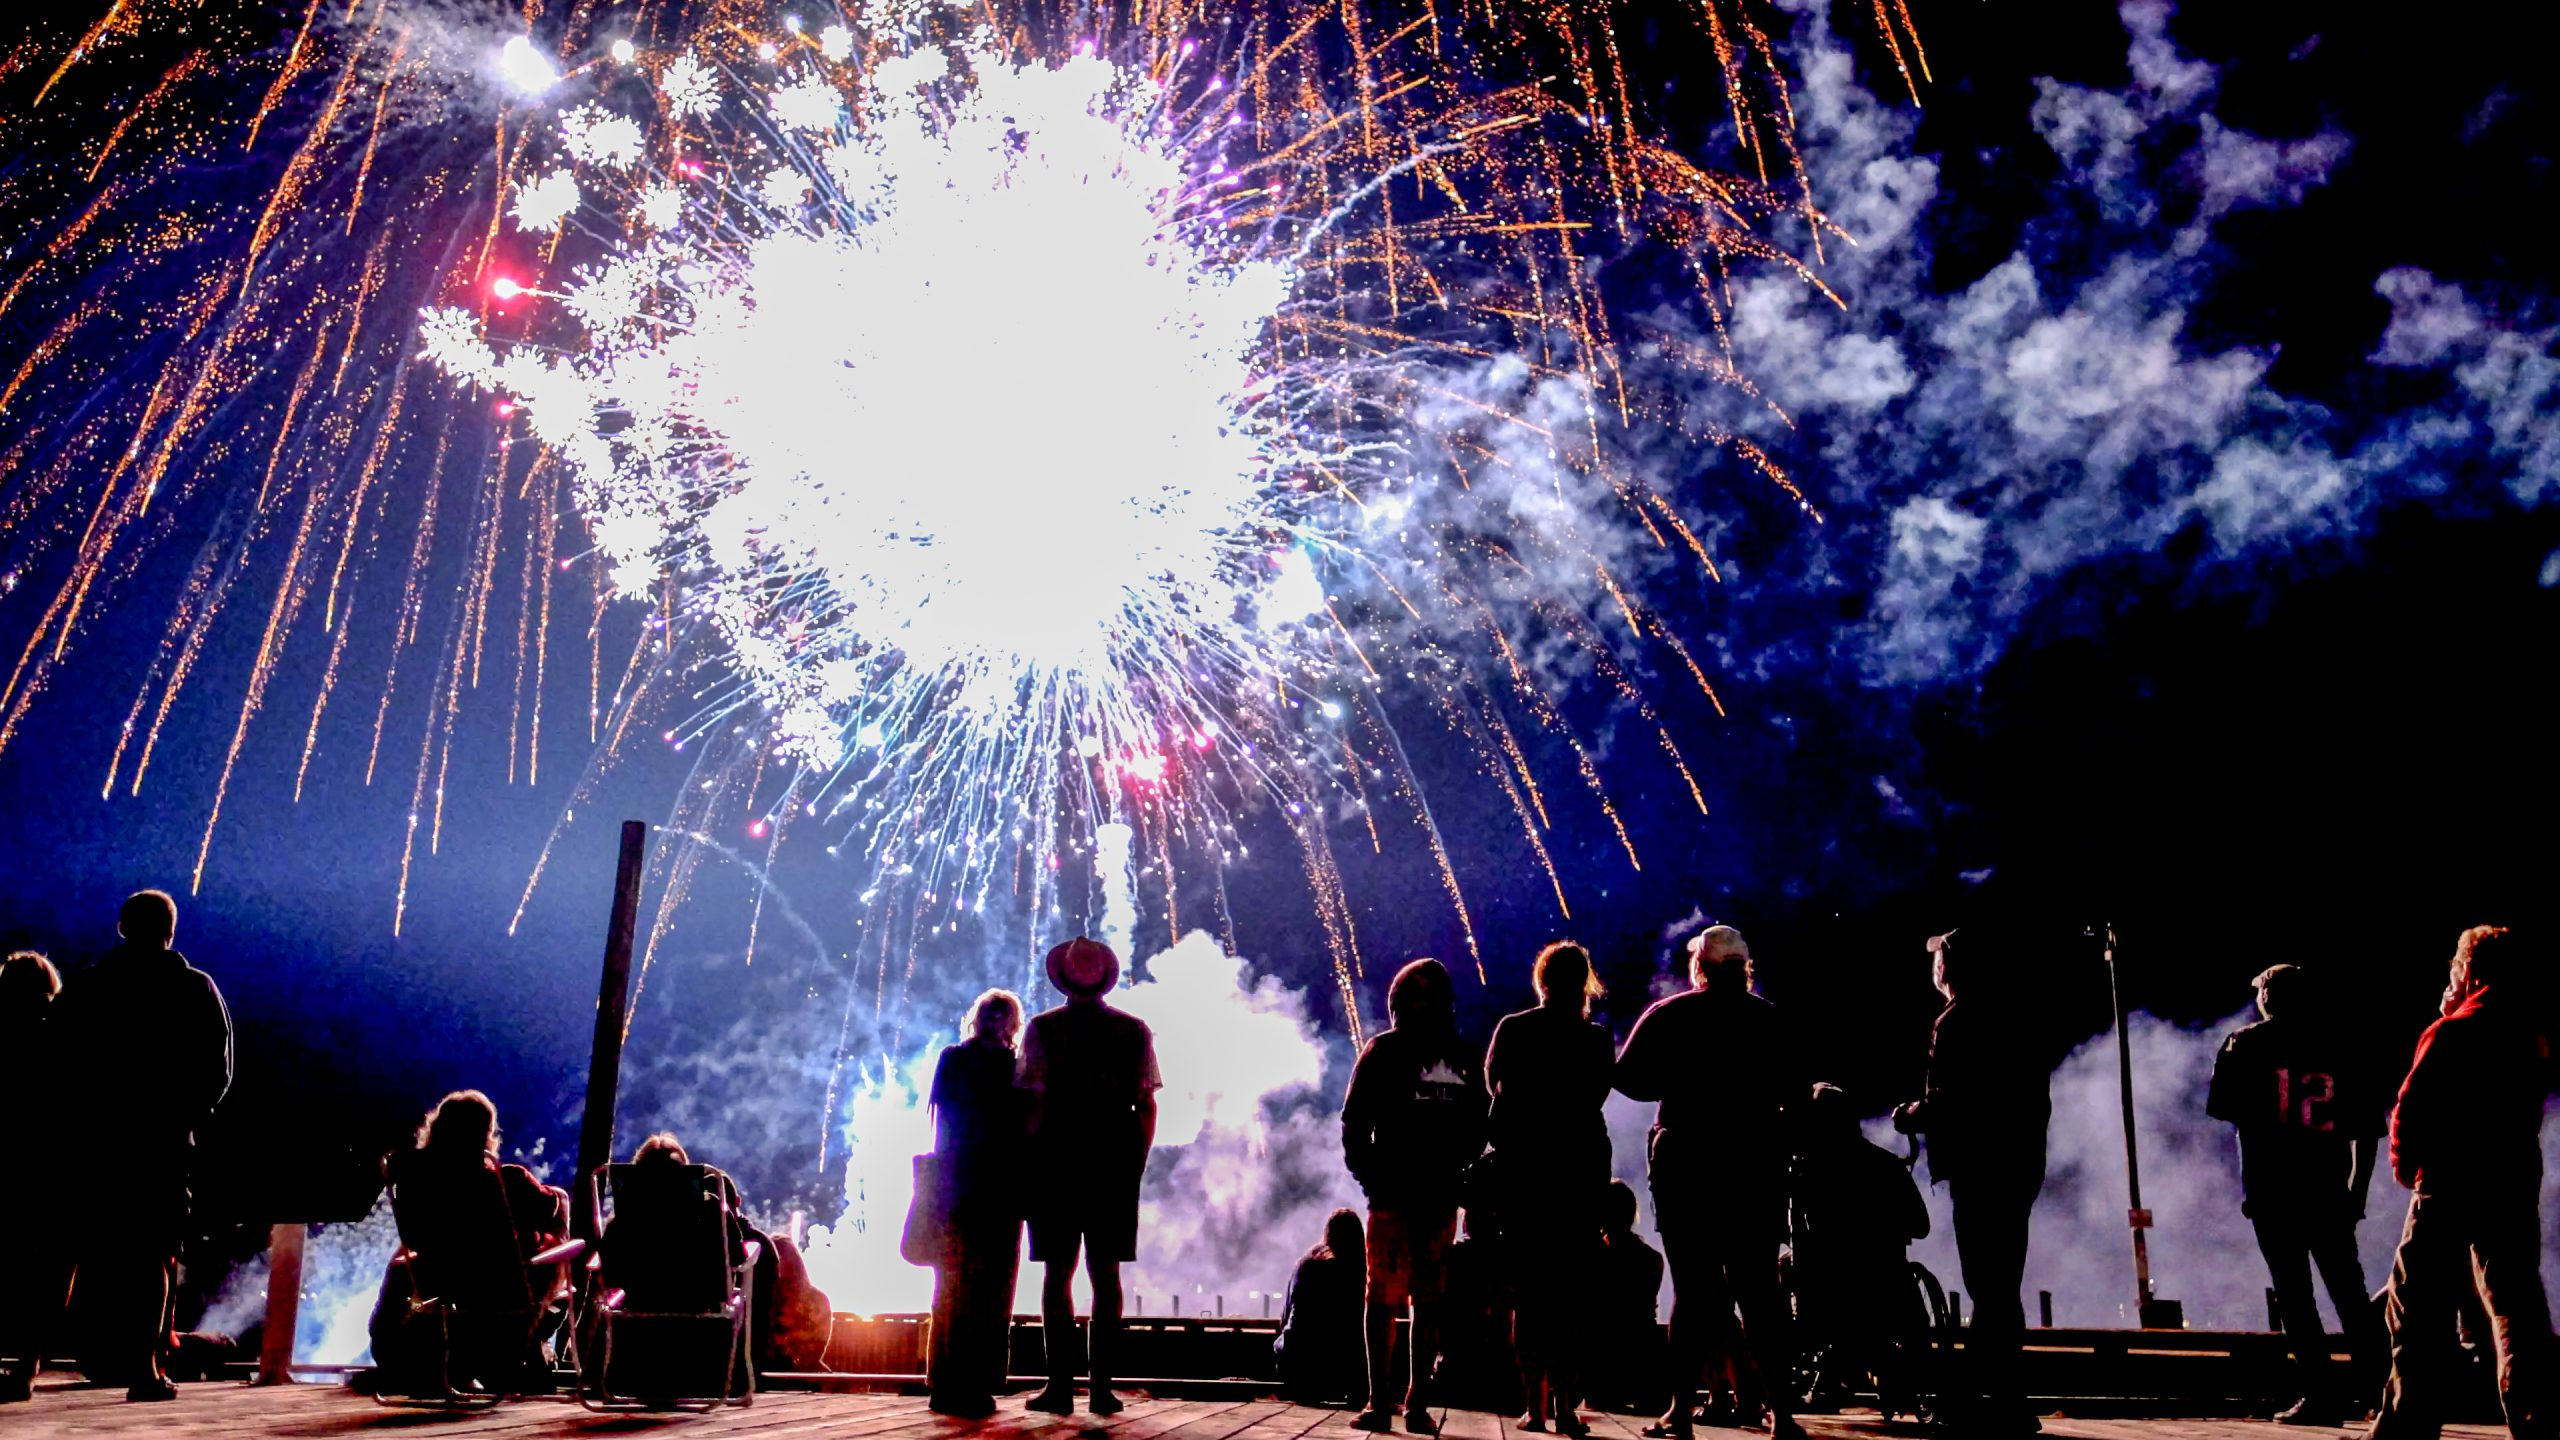 Weekend fireworks show on Annapolis Royal Nova Scotia harbourfront